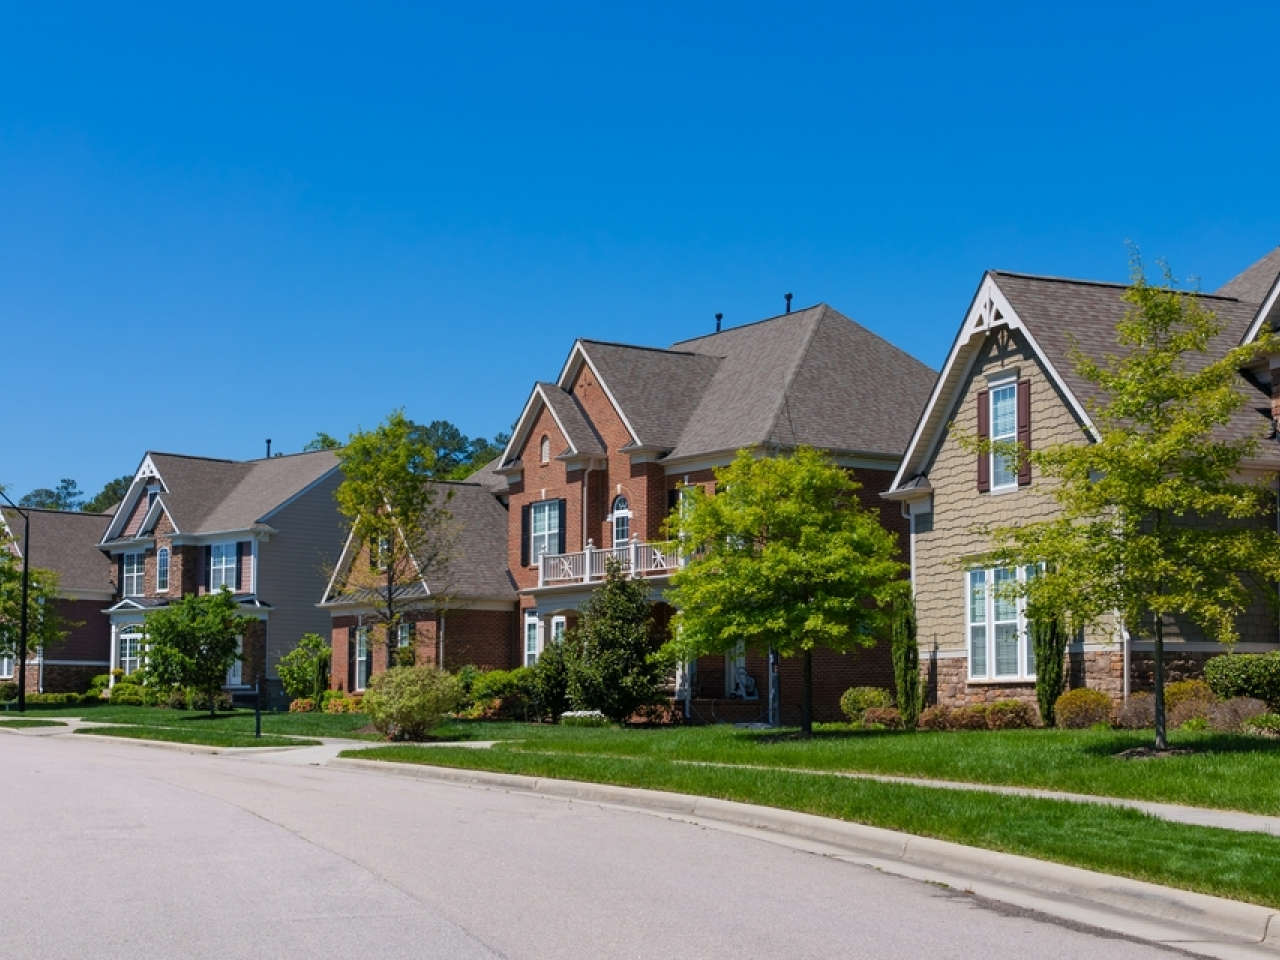 The average price of homes in the United States has now reached US$363,300. File image: Shutterstock